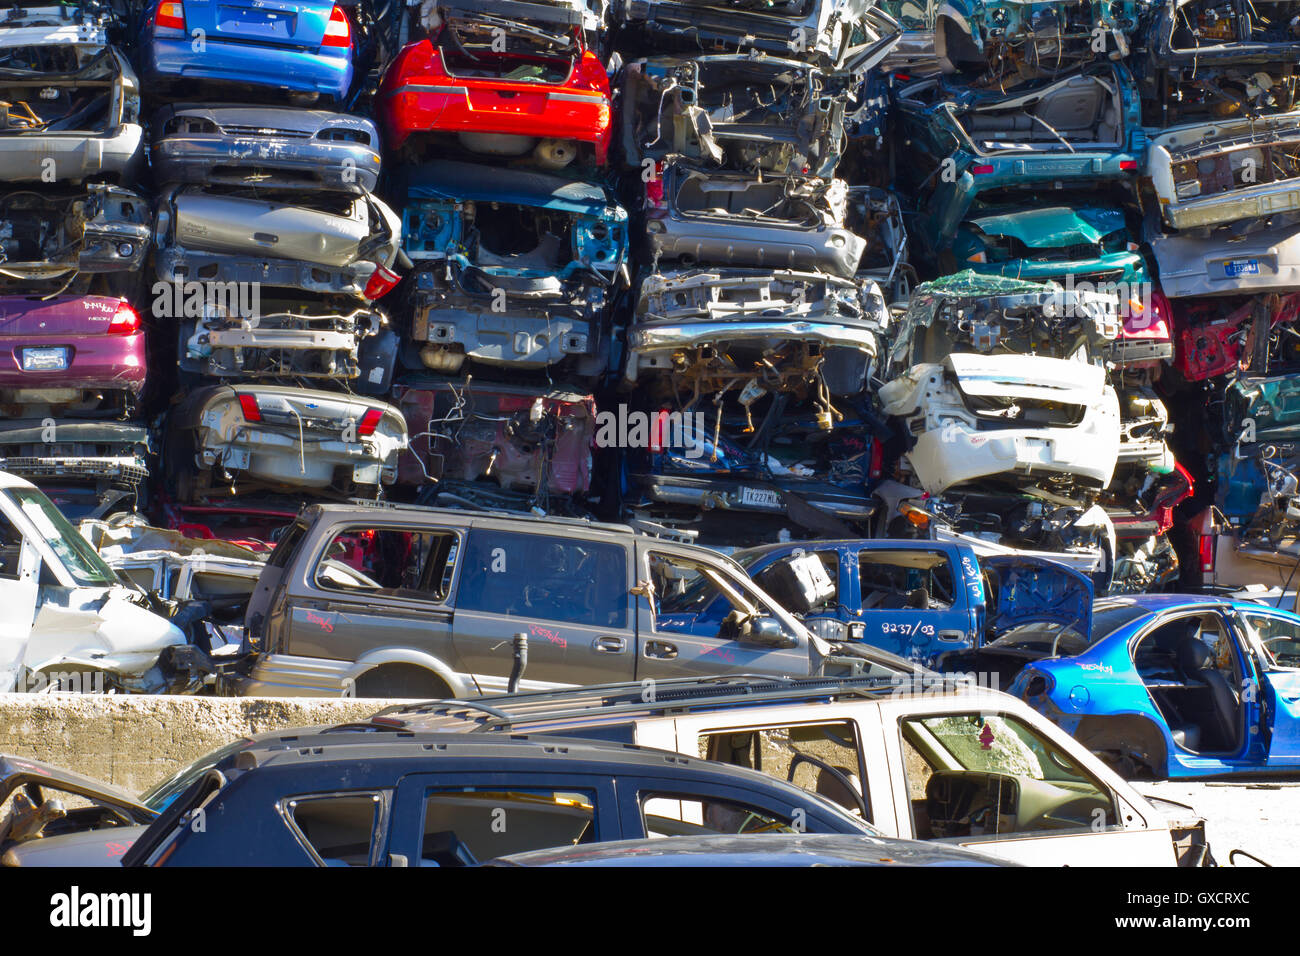 Indianapolis - Circa November 2015 - A Pile of Stacked Junk Cars - Discarded Junk Cars Piled Up After Crushing II - Stock Image